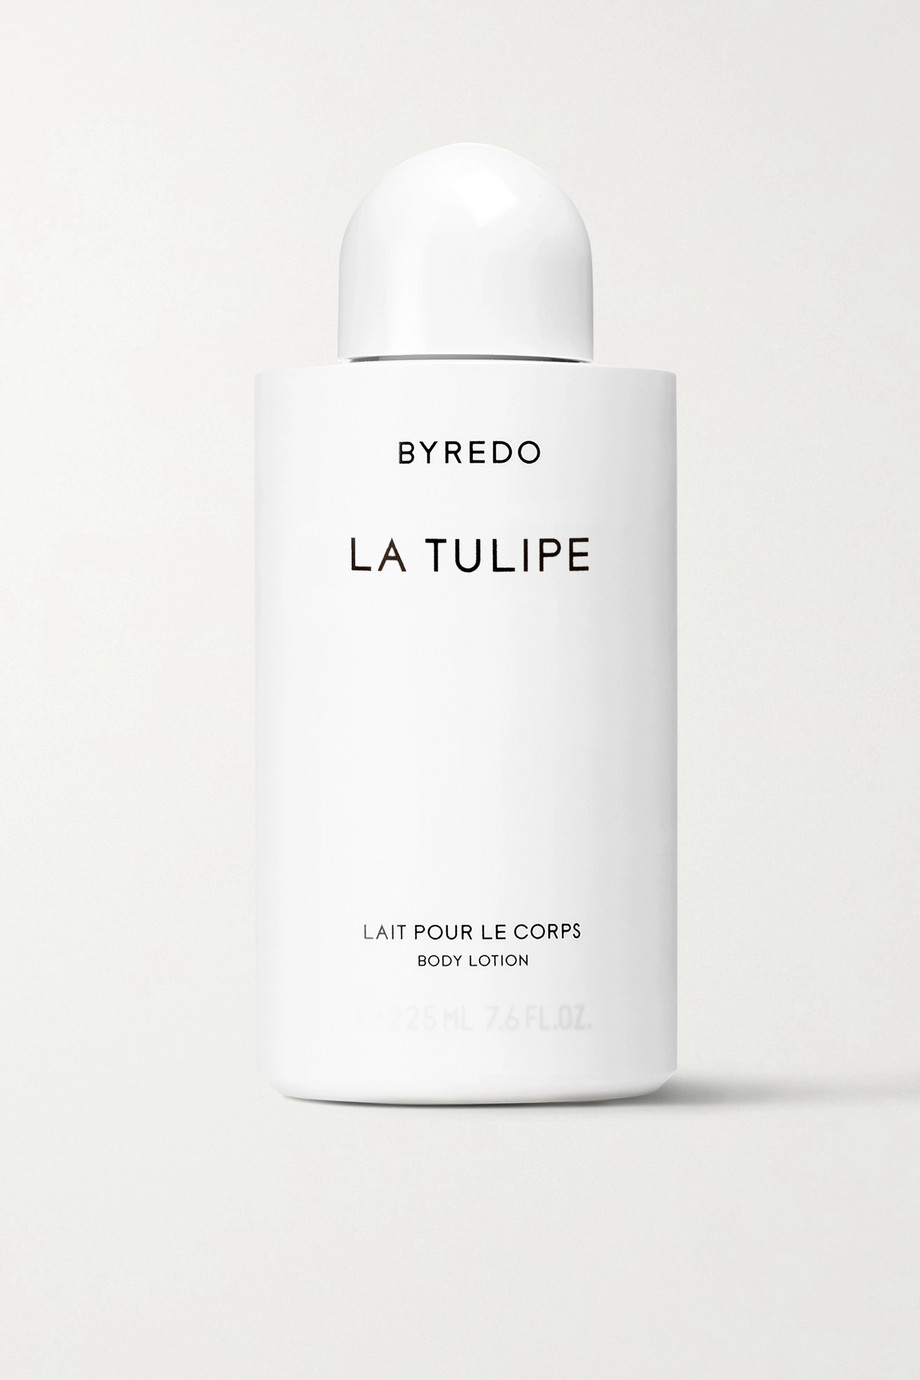 Byredo La Tulipe Body Lotion, 225ml